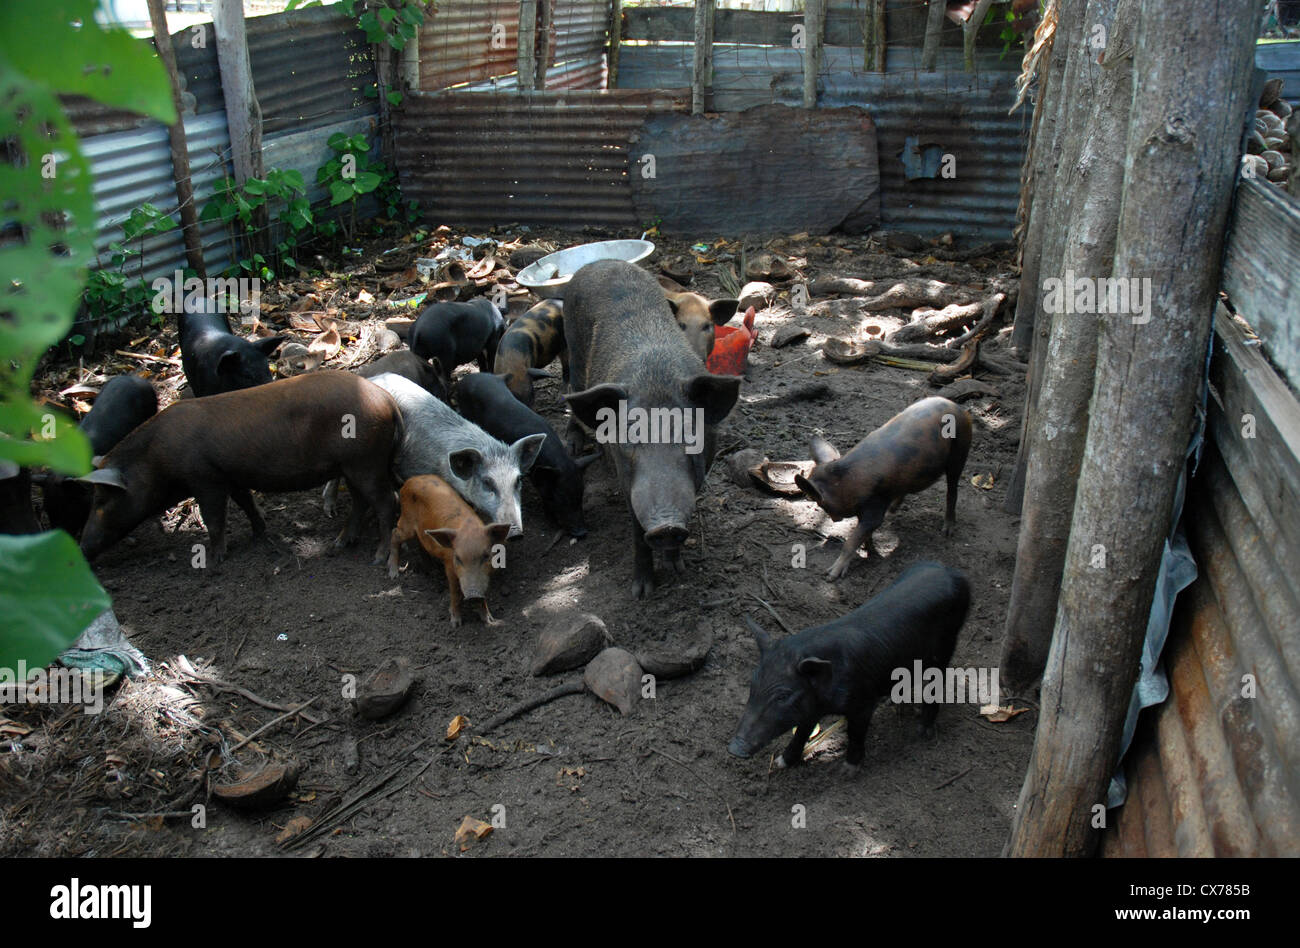 Domestic pigs and piglets, Tonga - Stock Image